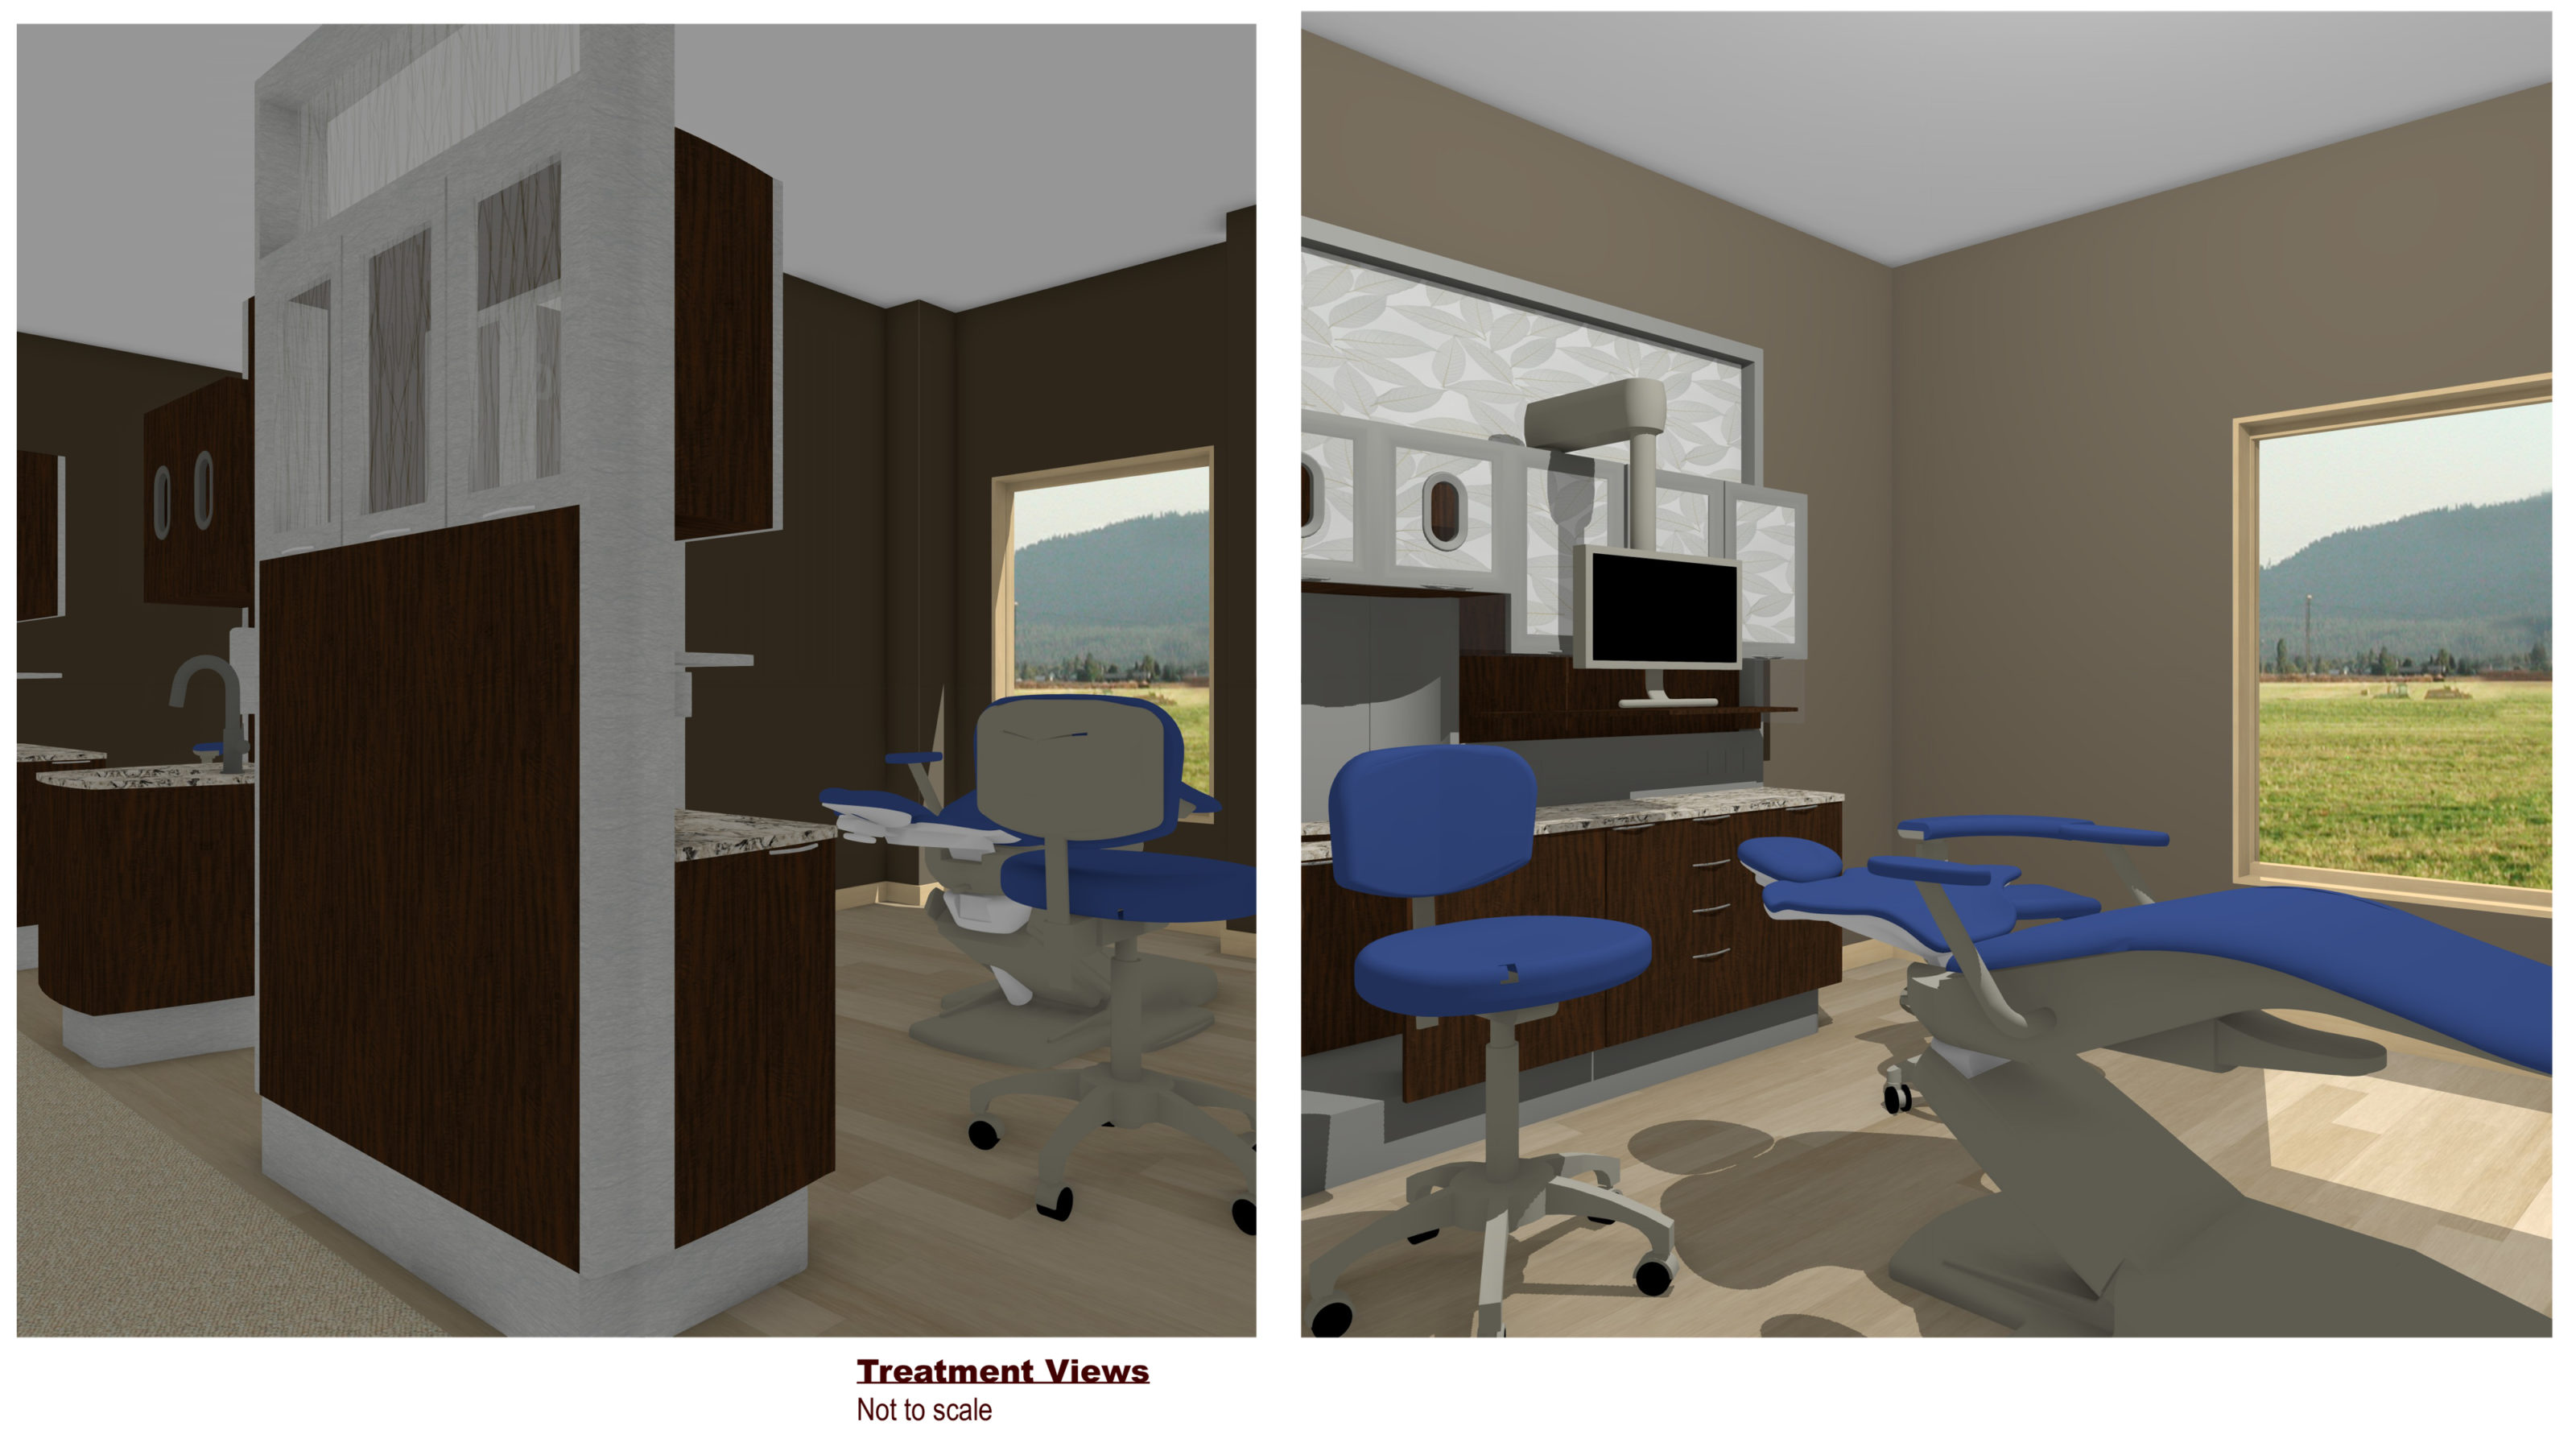 Taking a 3D office tour is always a fascinating opportunity. These two images are two stills from a dental practice walk-through. Both images show treatment views. Neither image is to scale but gives the potential recipient a taste of what their office could look like.